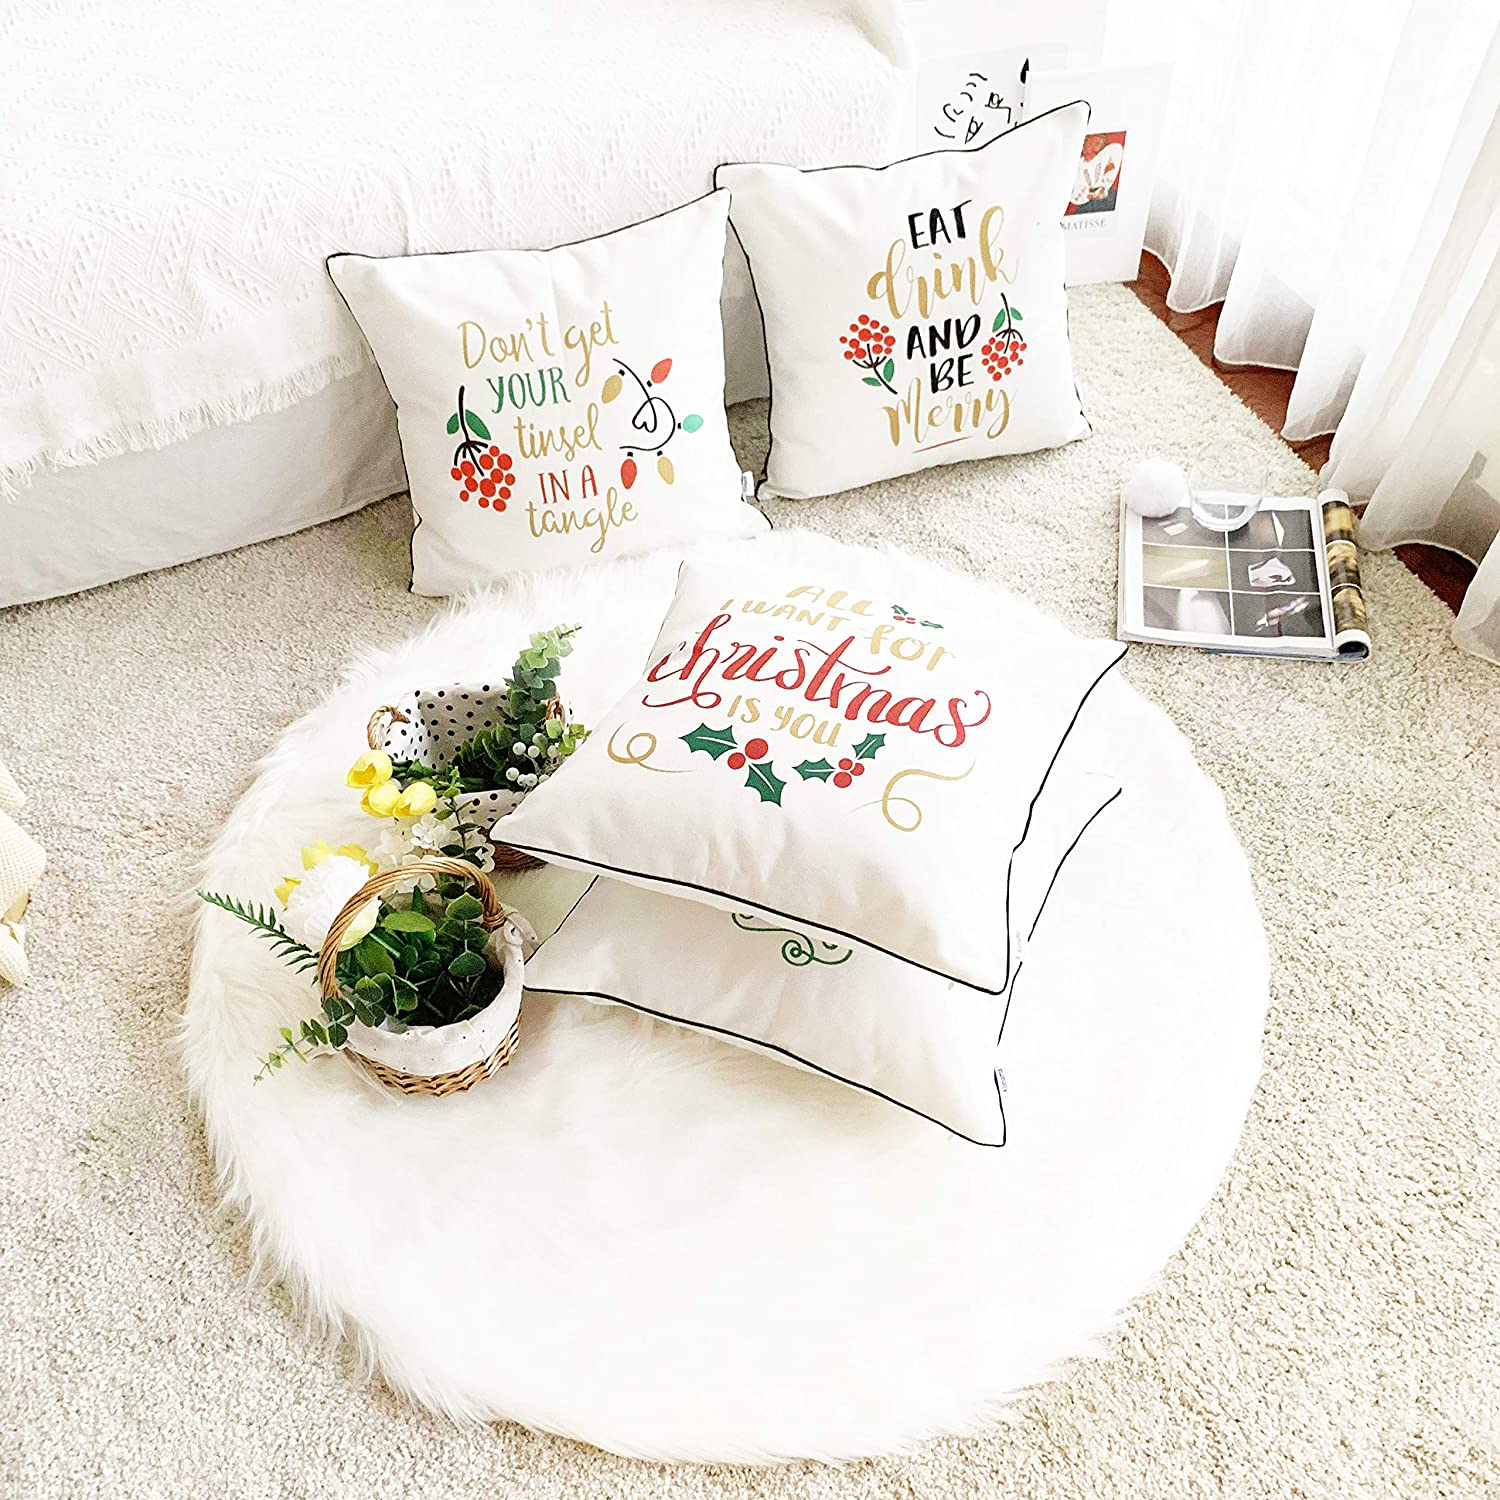 Alimama,Cotton Linen Digital Printed Geometric Pillowcases 18 x 18 Inch with Meaningful Pastoral Colors with Piping for Soft Home Decorate Cushion Covers Sham Aqua Pack with 6 Pcs 45x45cm